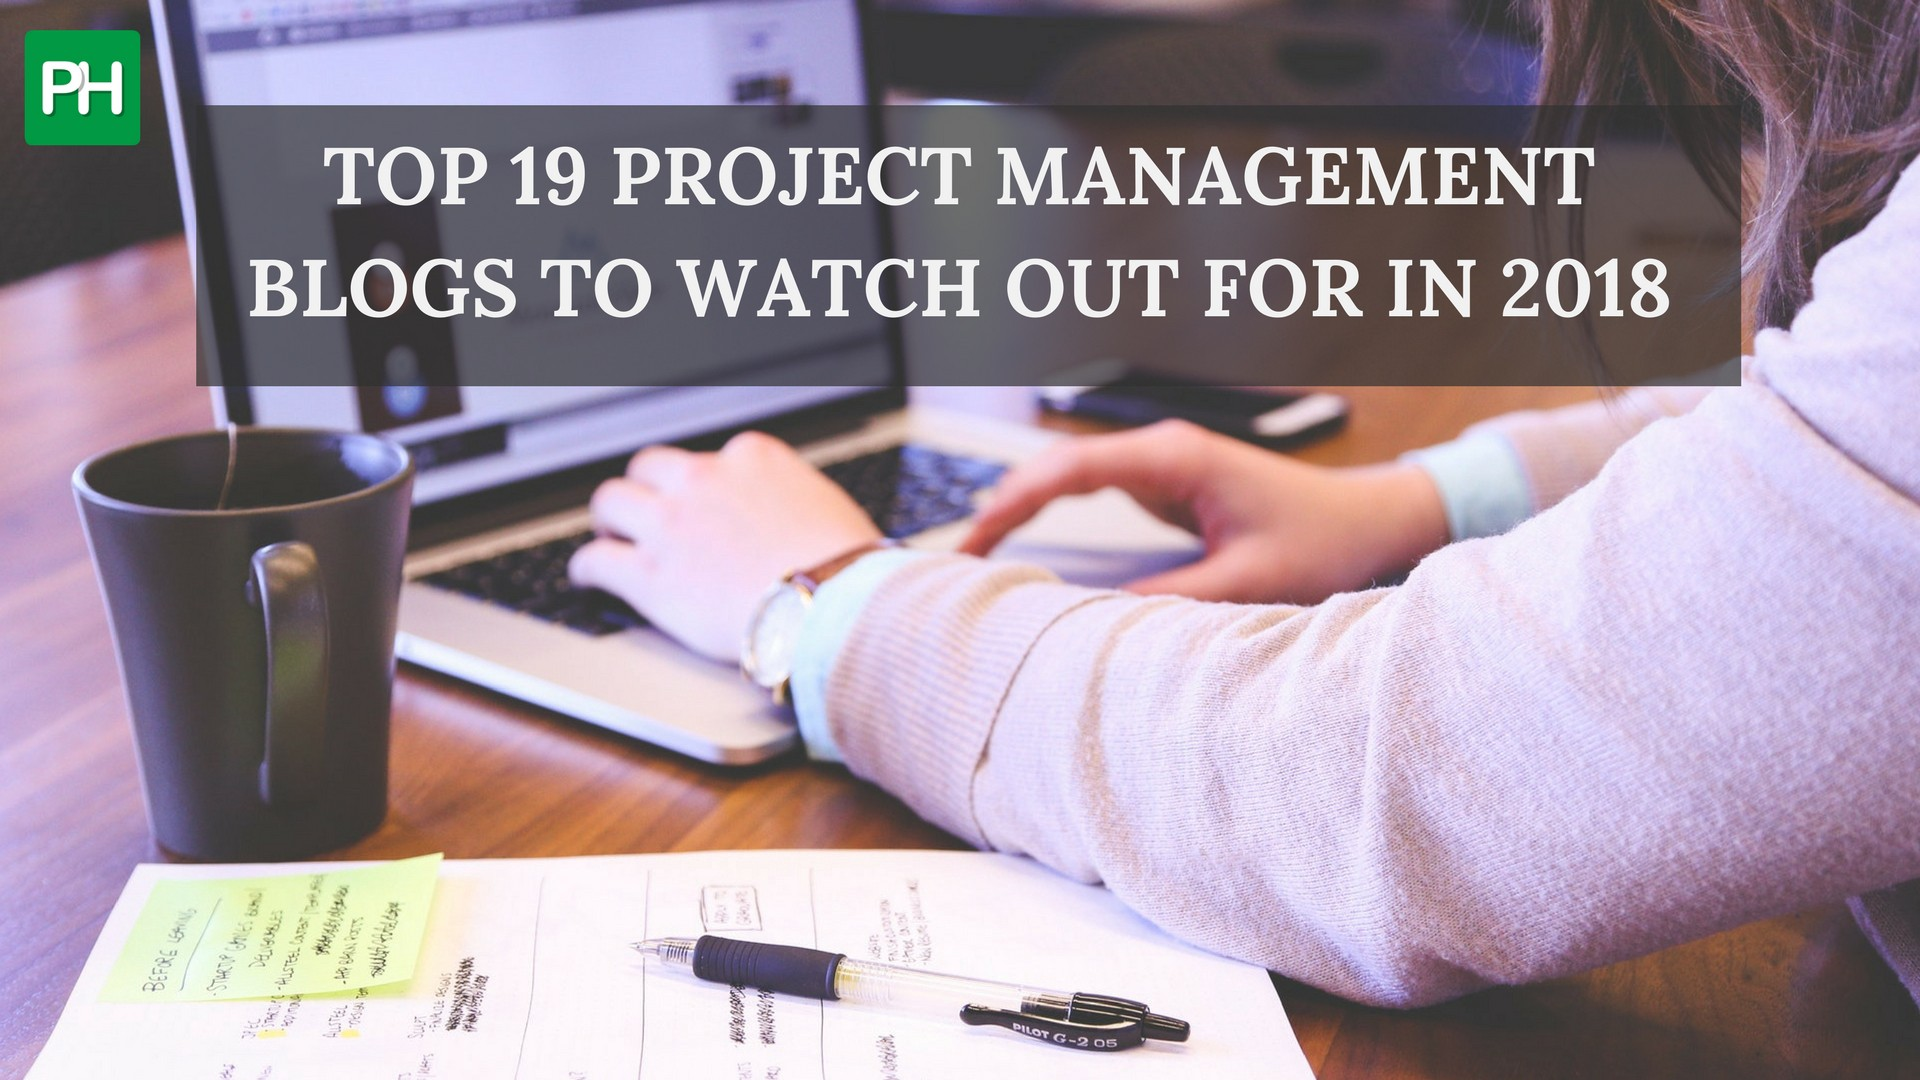 Top 19 Project Management Blogs To Watch Out For In 2018